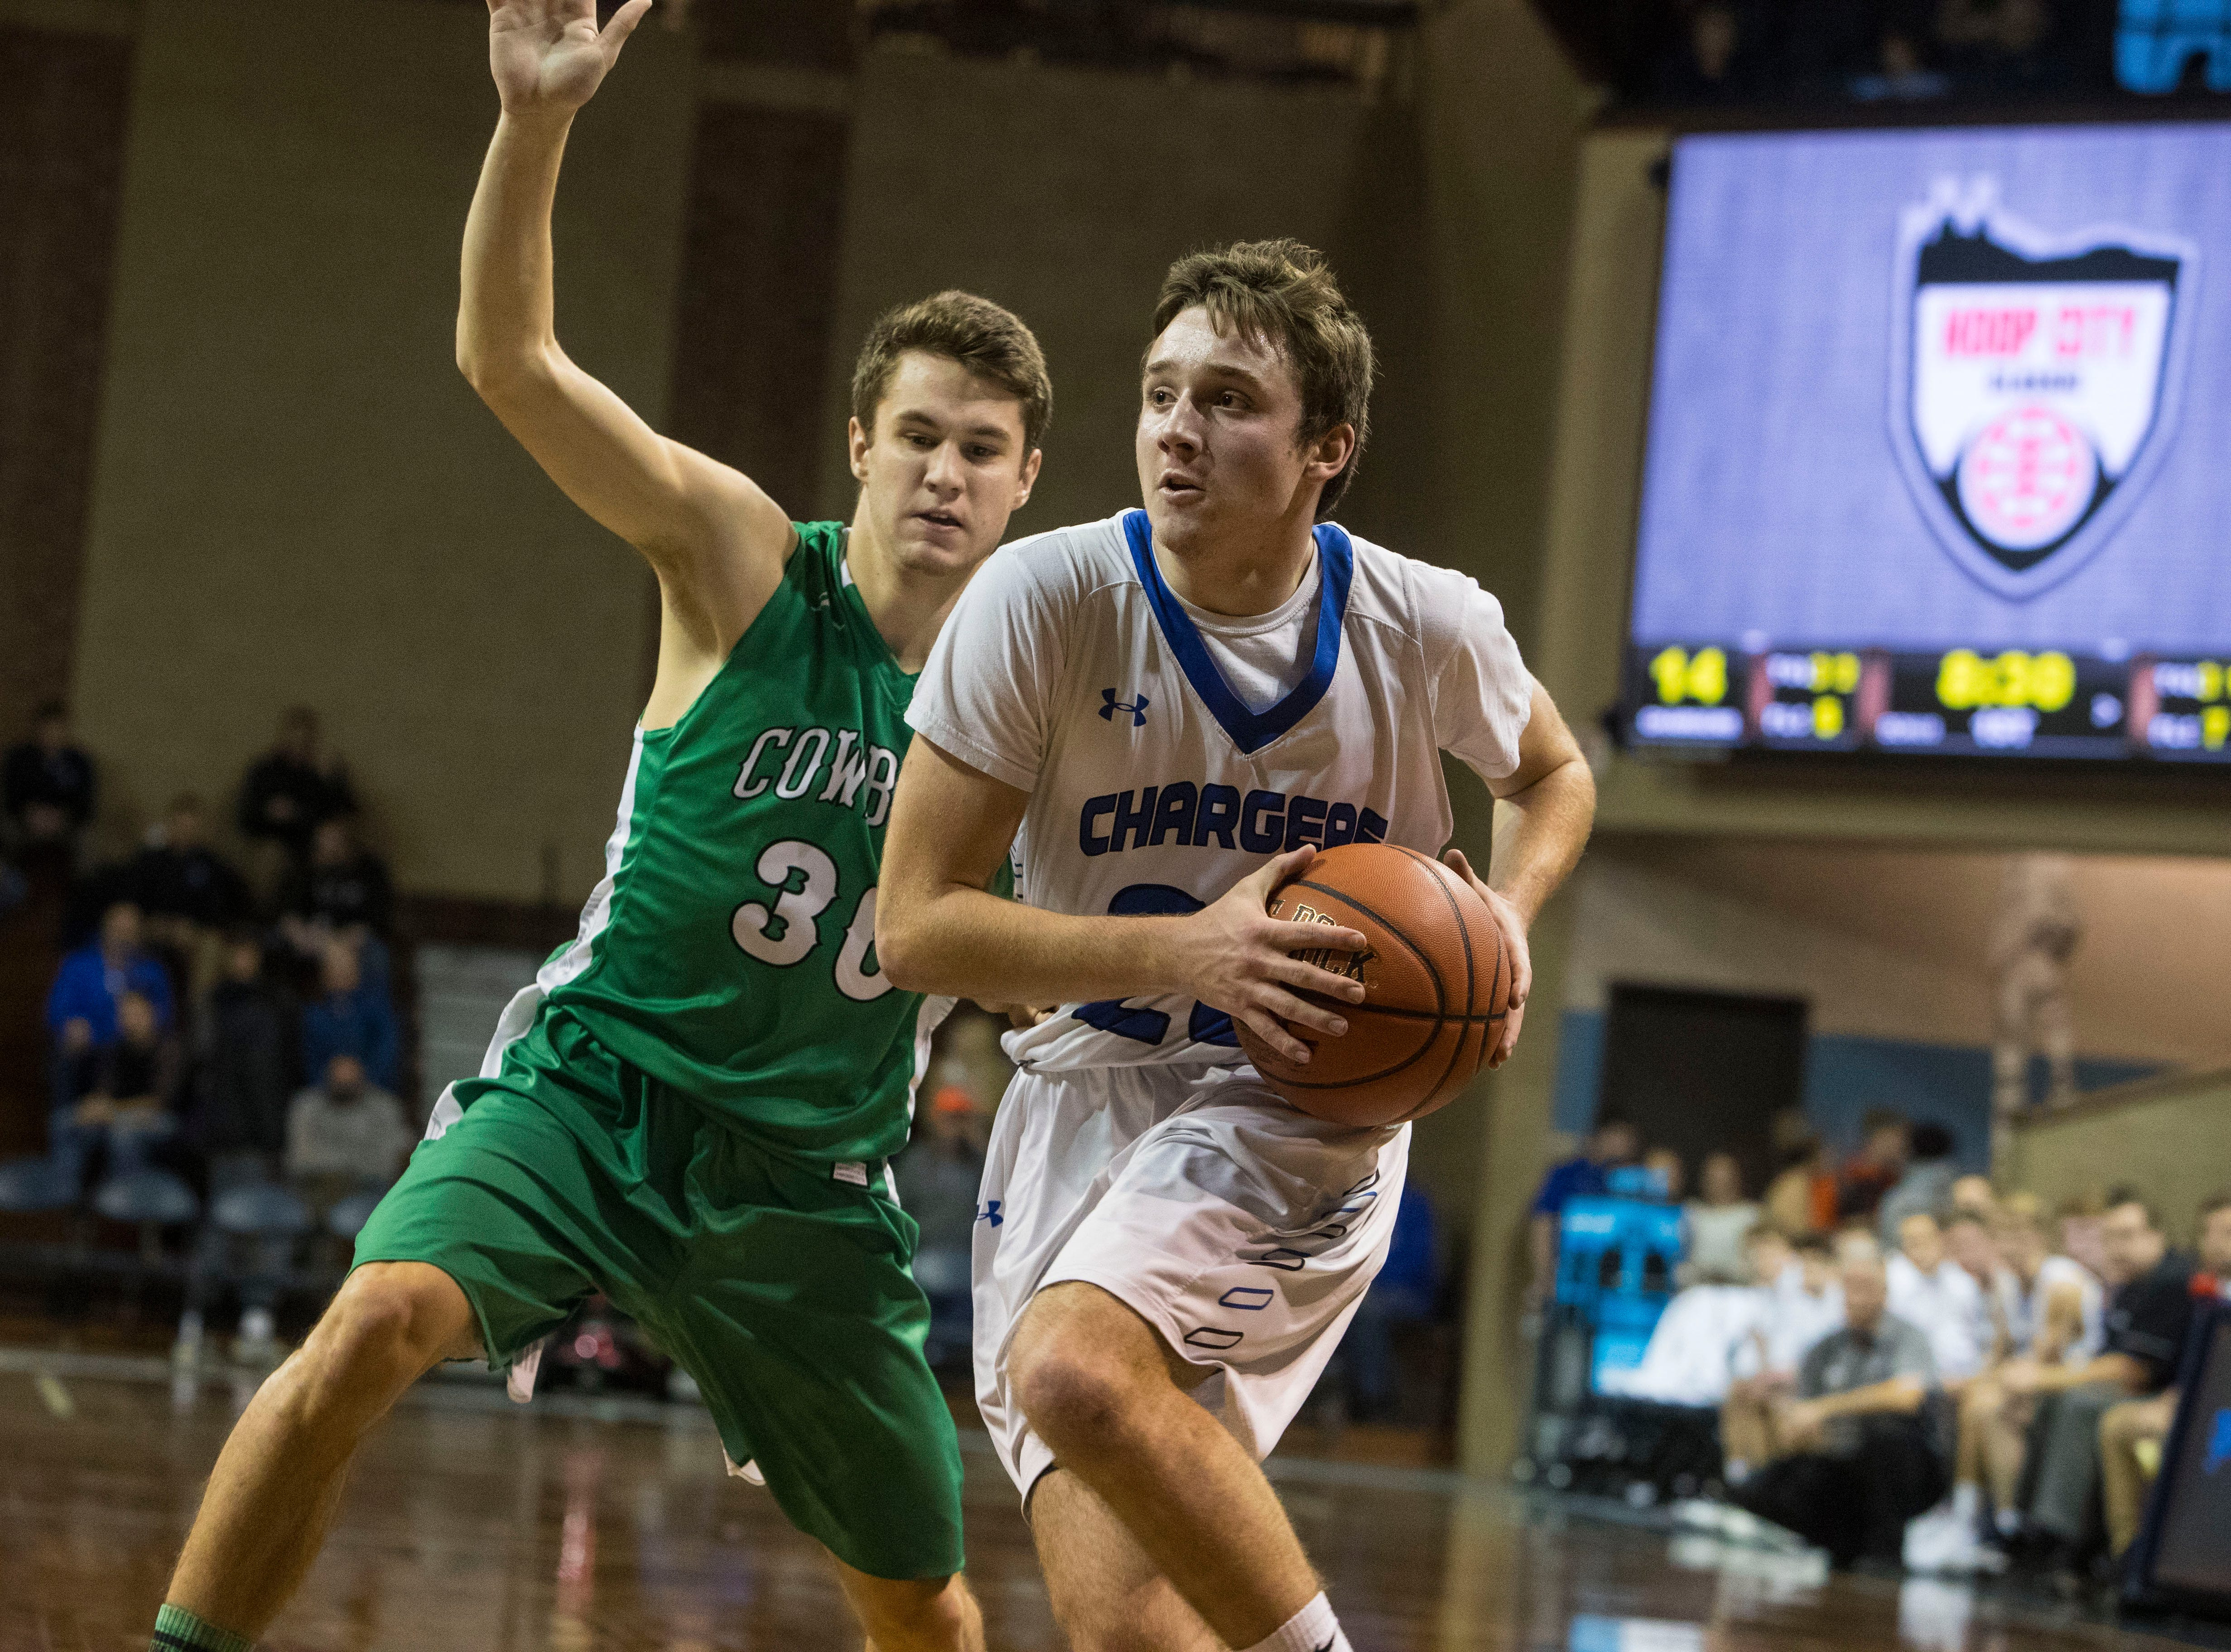 Sioux Falls Christian's Parker Nelson (20) dribbles the ball past Breckenridge's Sam Bakken (30) at the Hoop City Classic at the Sanford Pentagon in Sioux Falls, S.D., Saturday, Dec. 29, 2018.